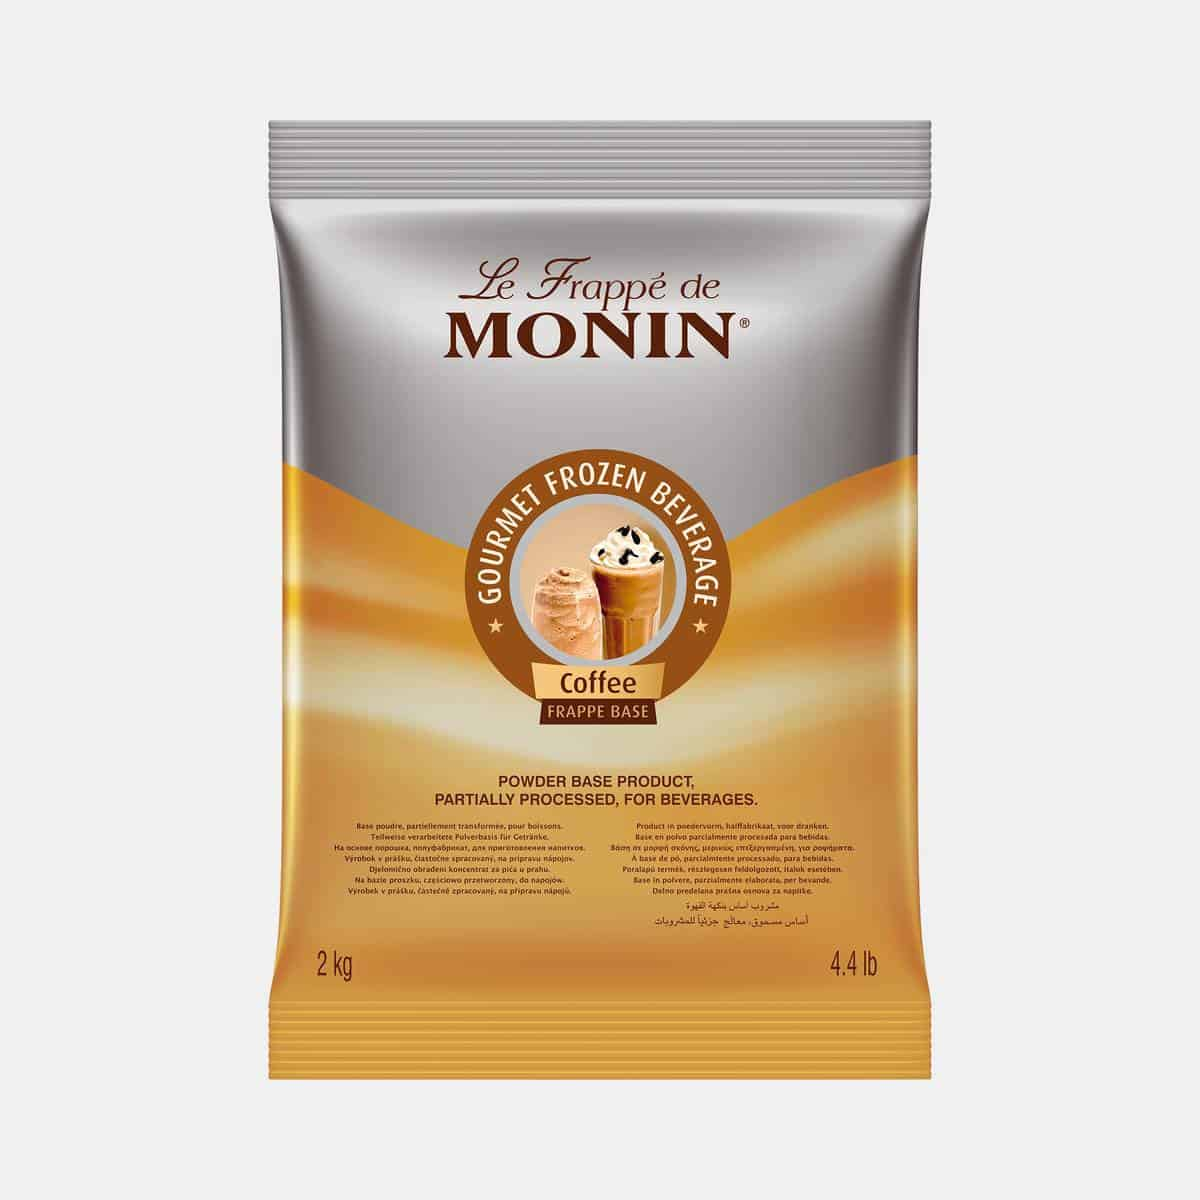 Monin Coffee Frappe Base Powder 2kg Sealed Bag